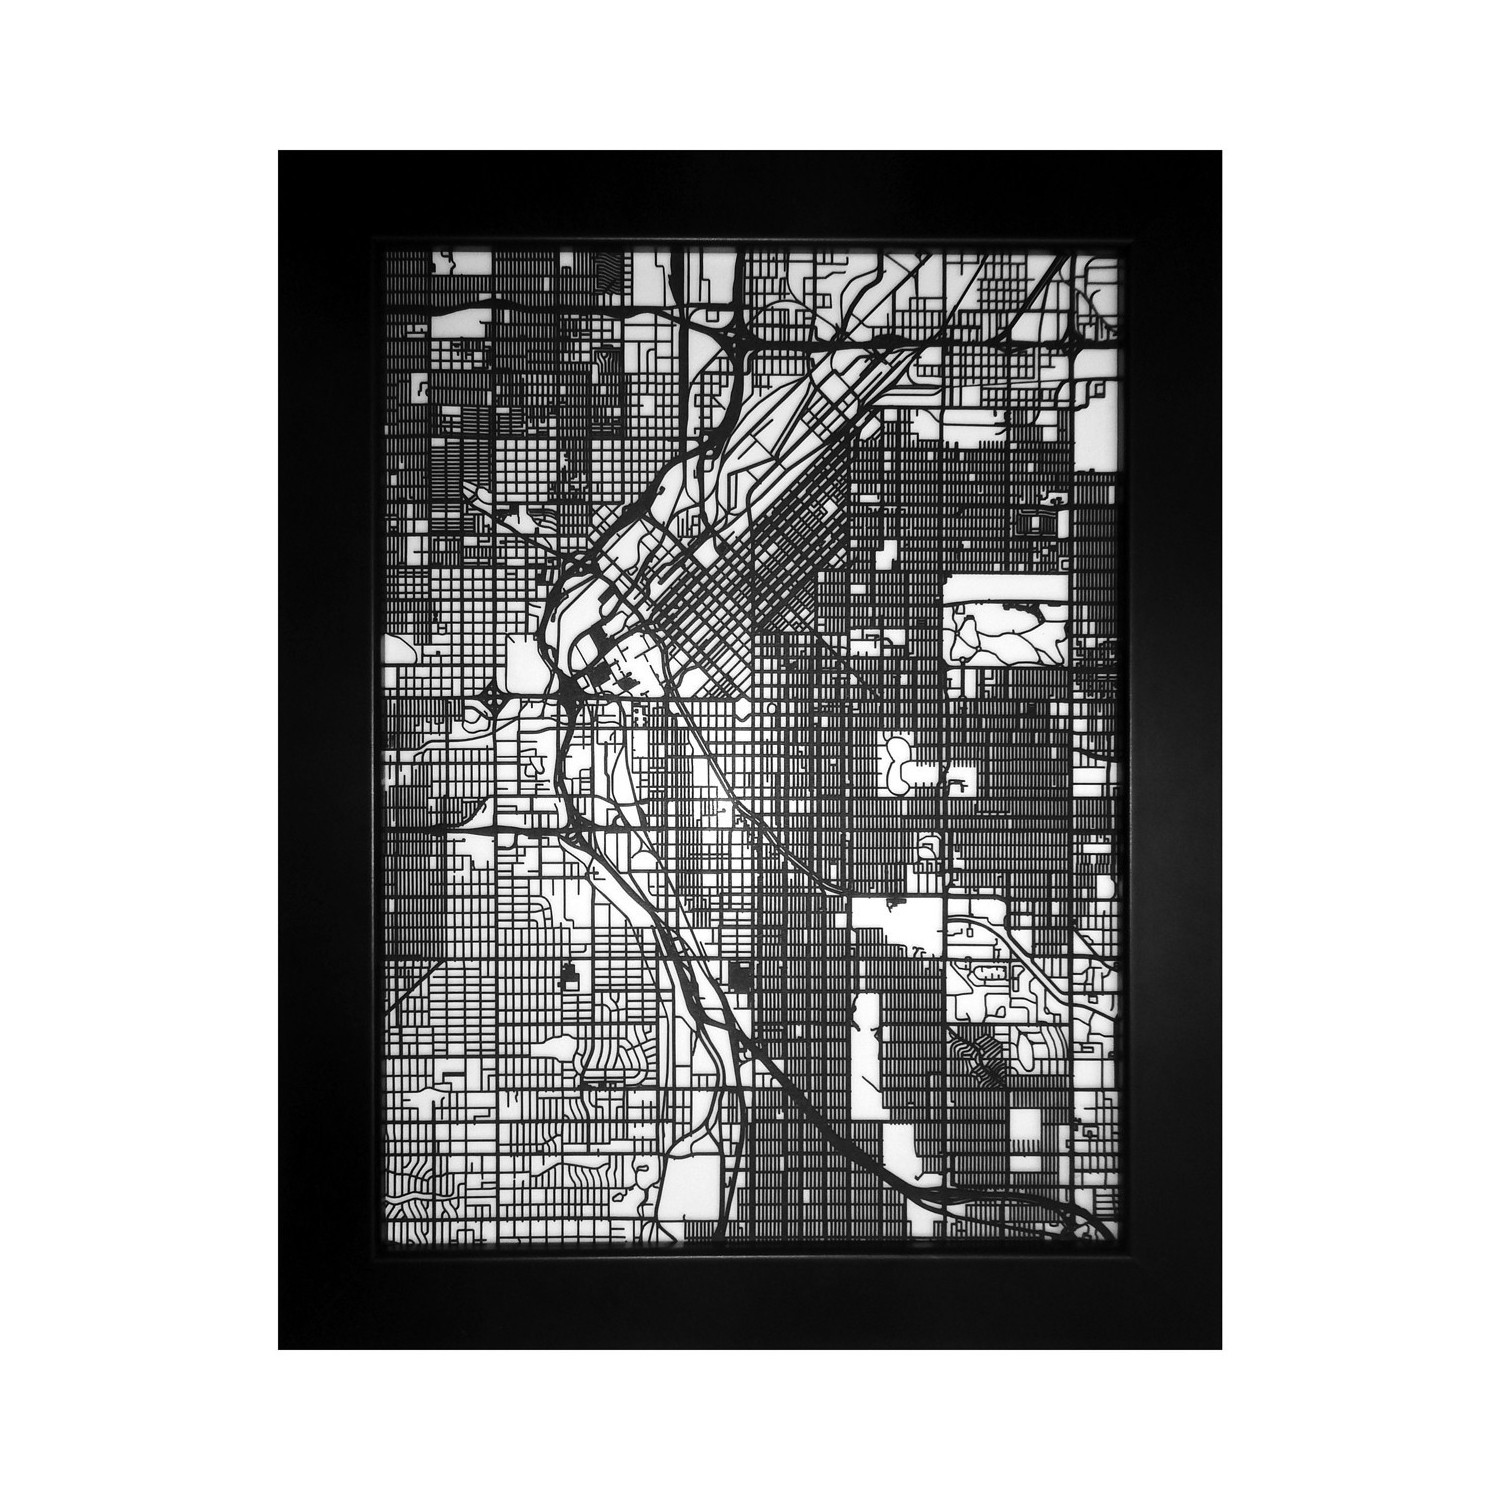 Denver Street Map Size 11x14 CarbonLight Touch of Modern